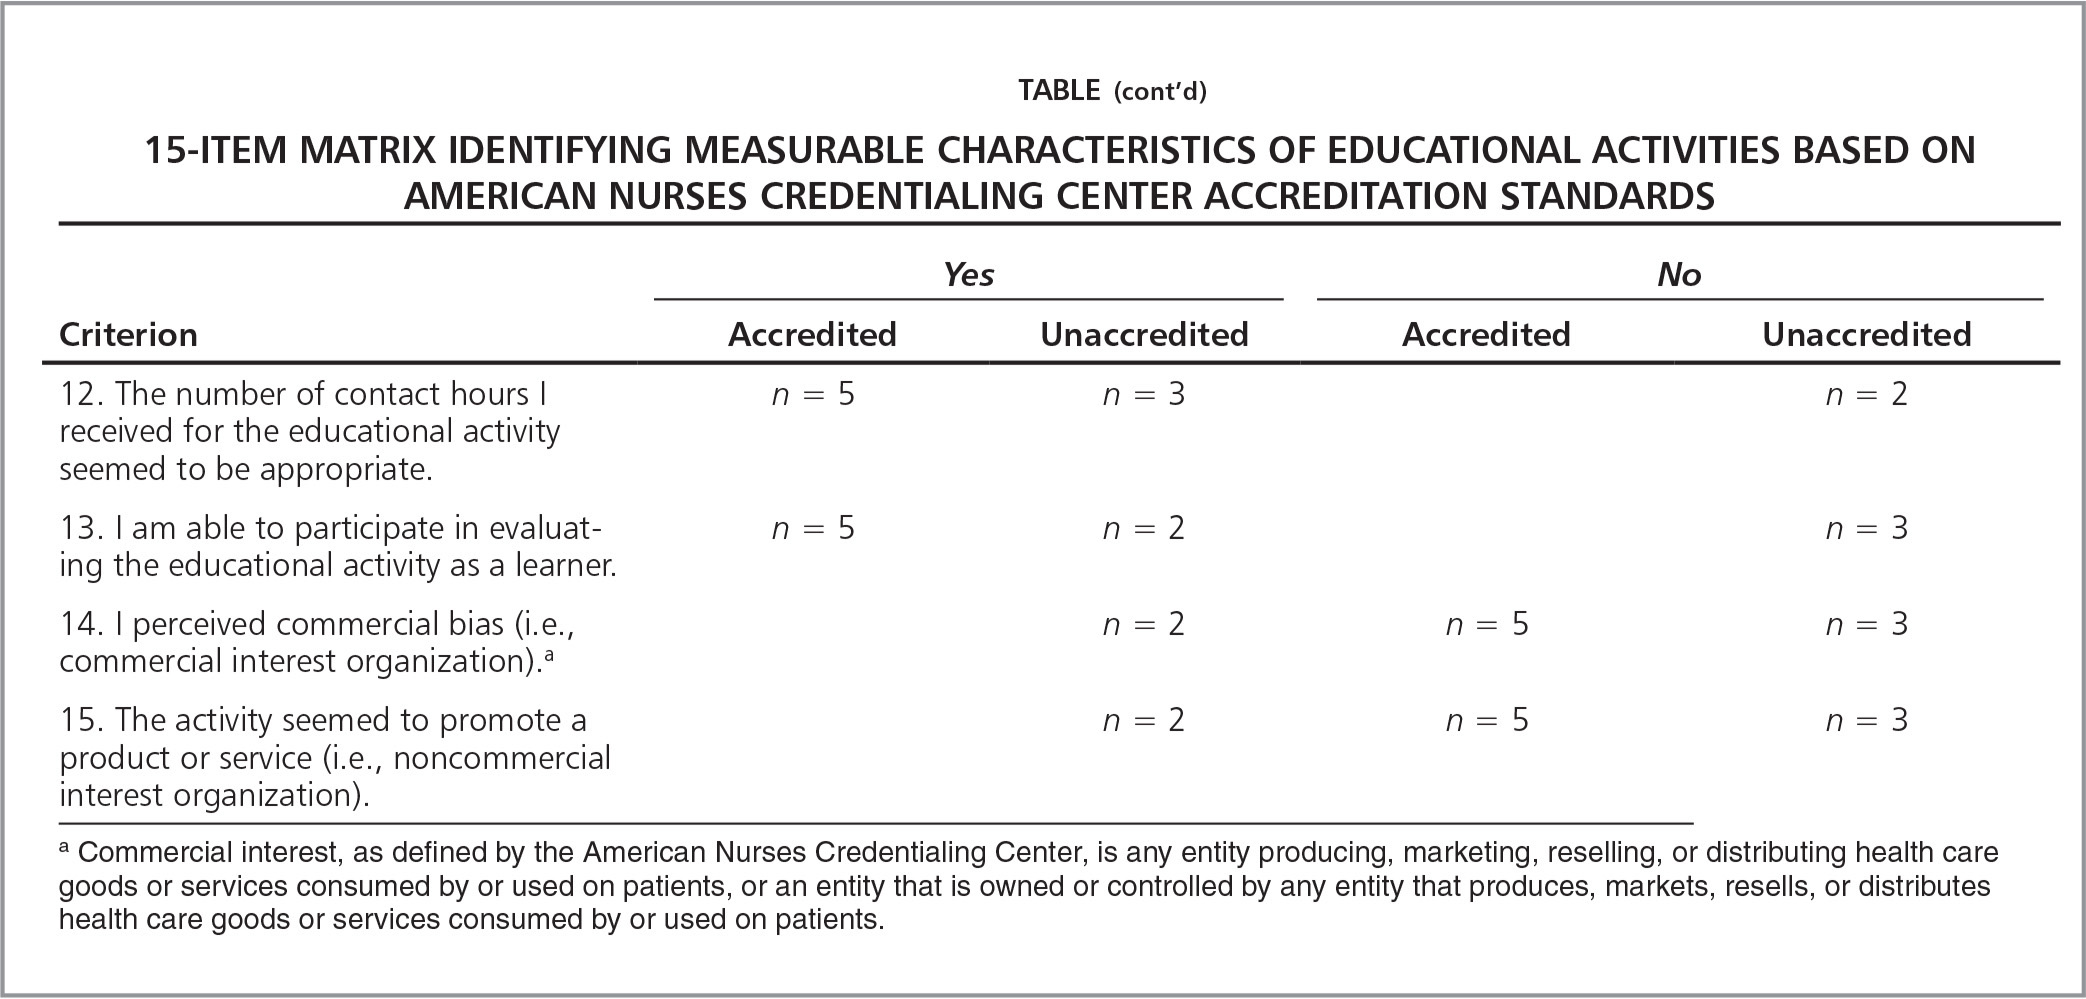 15-Item Matrix Identifying Measurable Characteristics of Educational Activities Based on American Nurses Credentialing Center Accreditation Standards